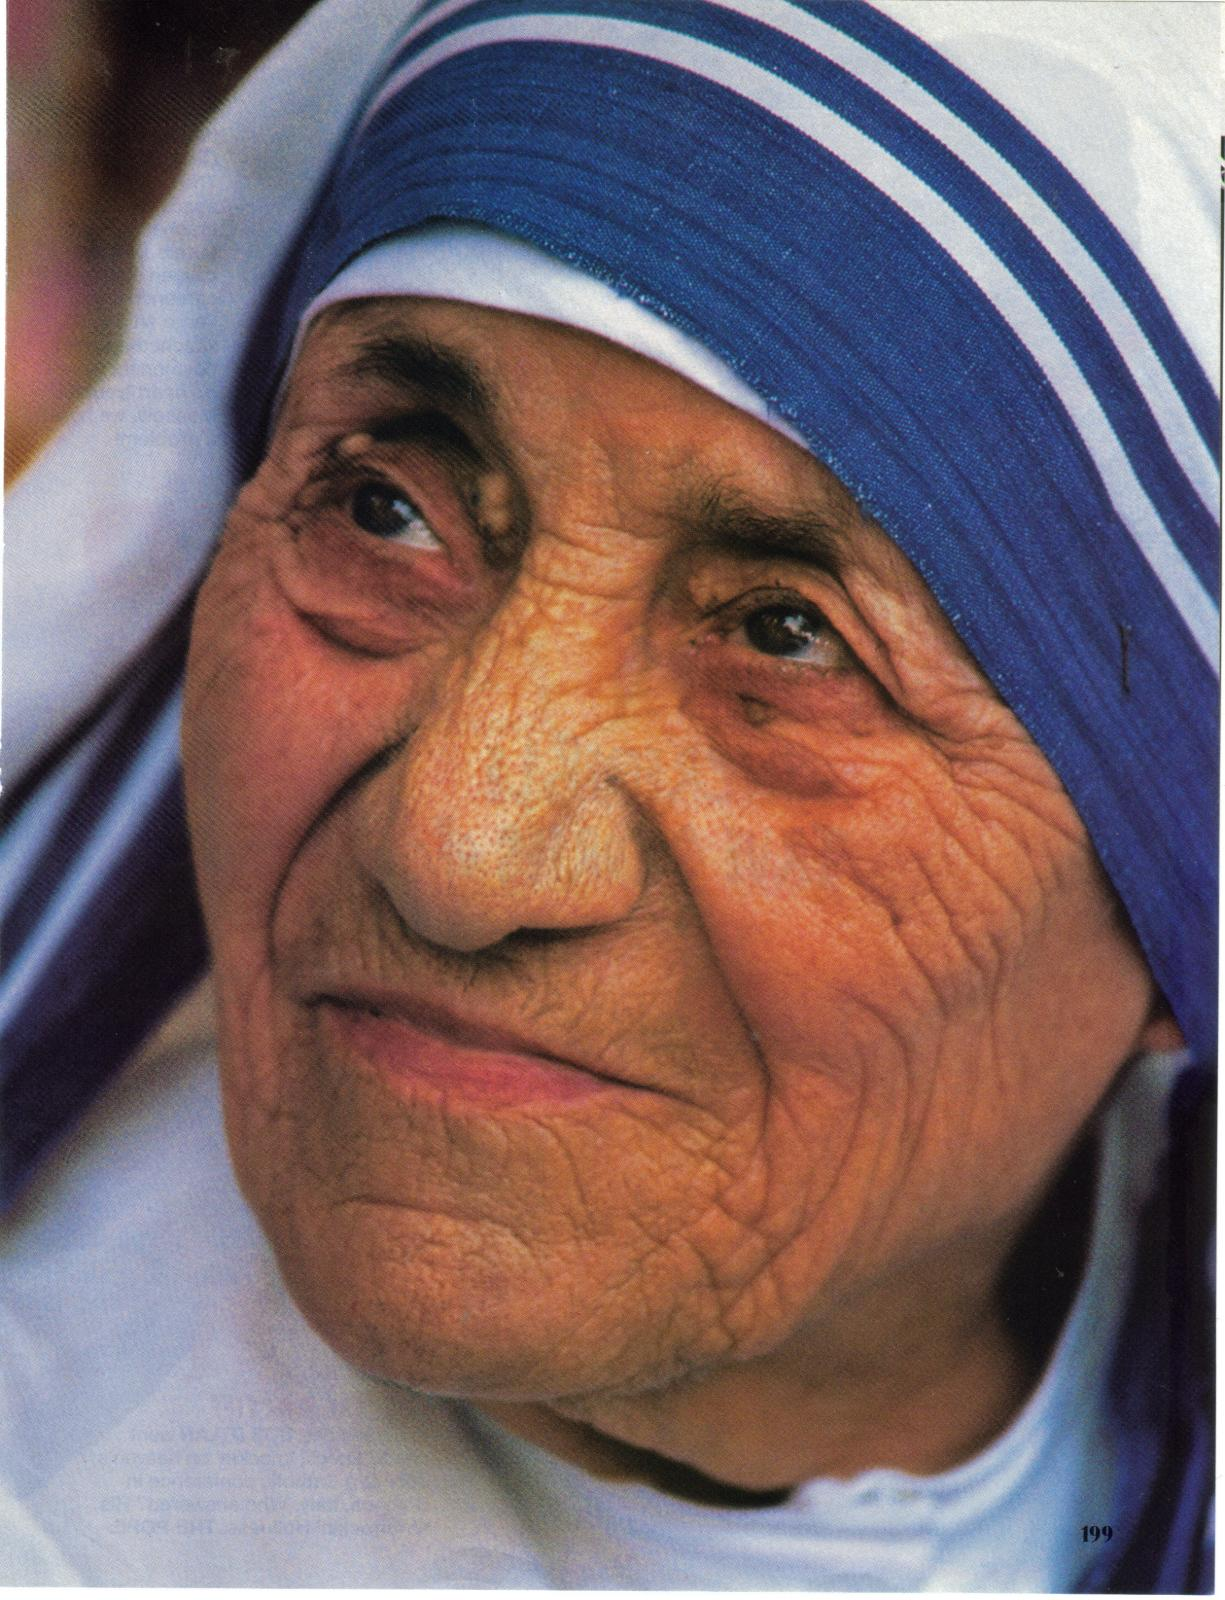 essay on mother teresa essay mother teresa essay on housekeeping mother teresa just got a sainthood but academics suggest